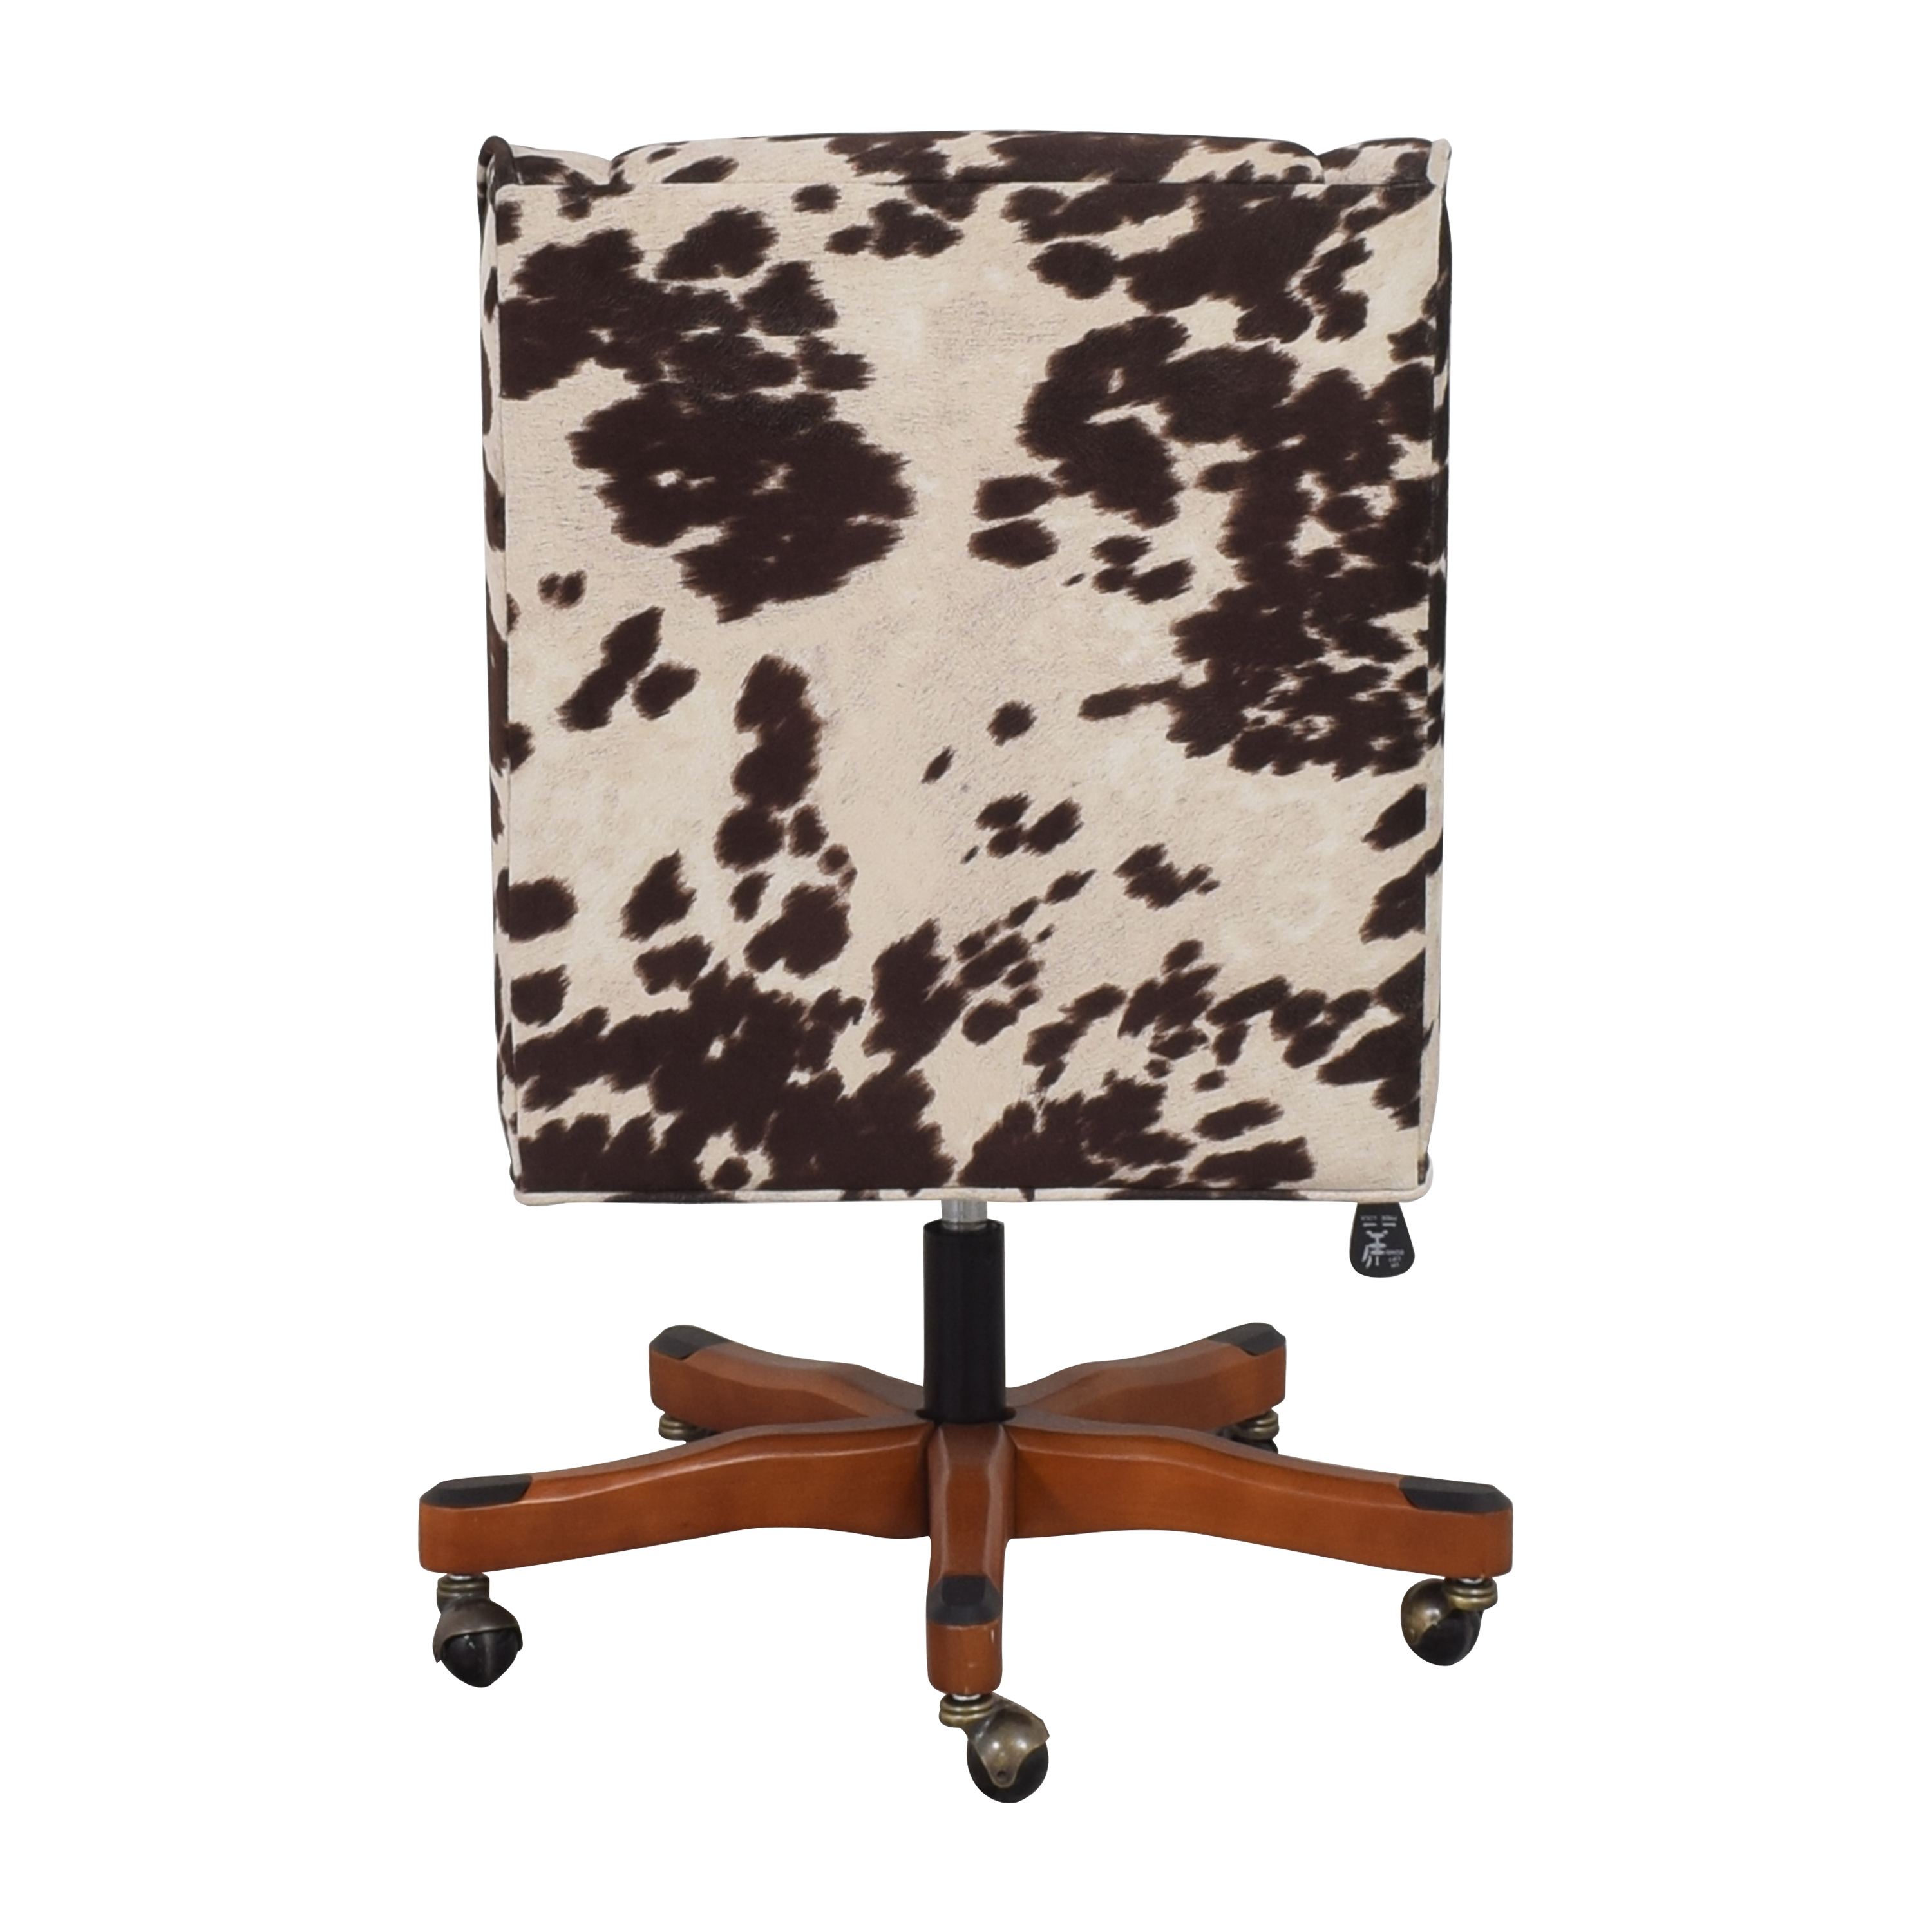 Linon Home Decor Linon Home Decor Wells Upholstered Swivel Office Chair brown and off white